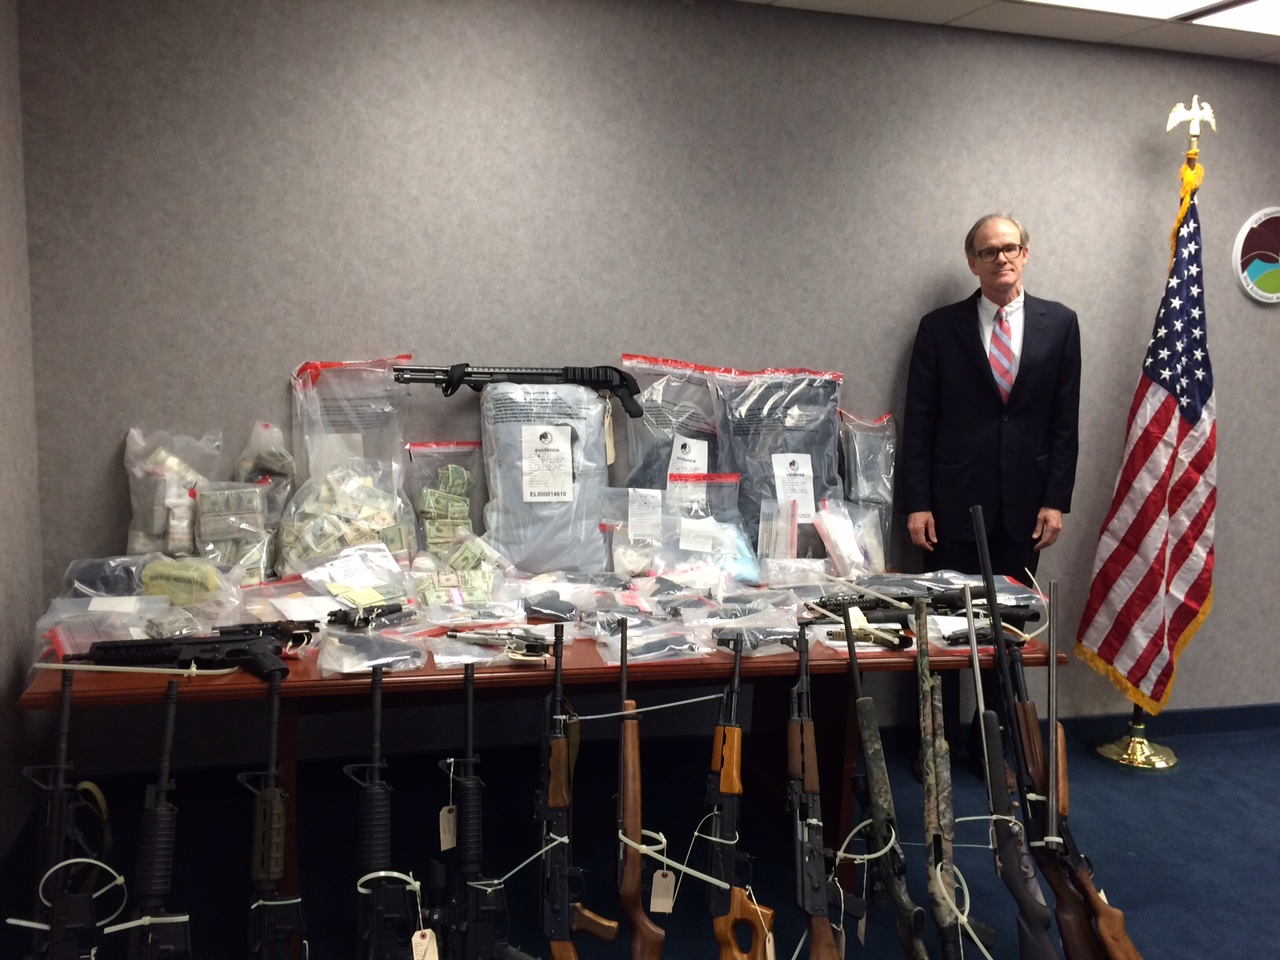 Cocaine Conspirators Arrested for Importing Hundreds of